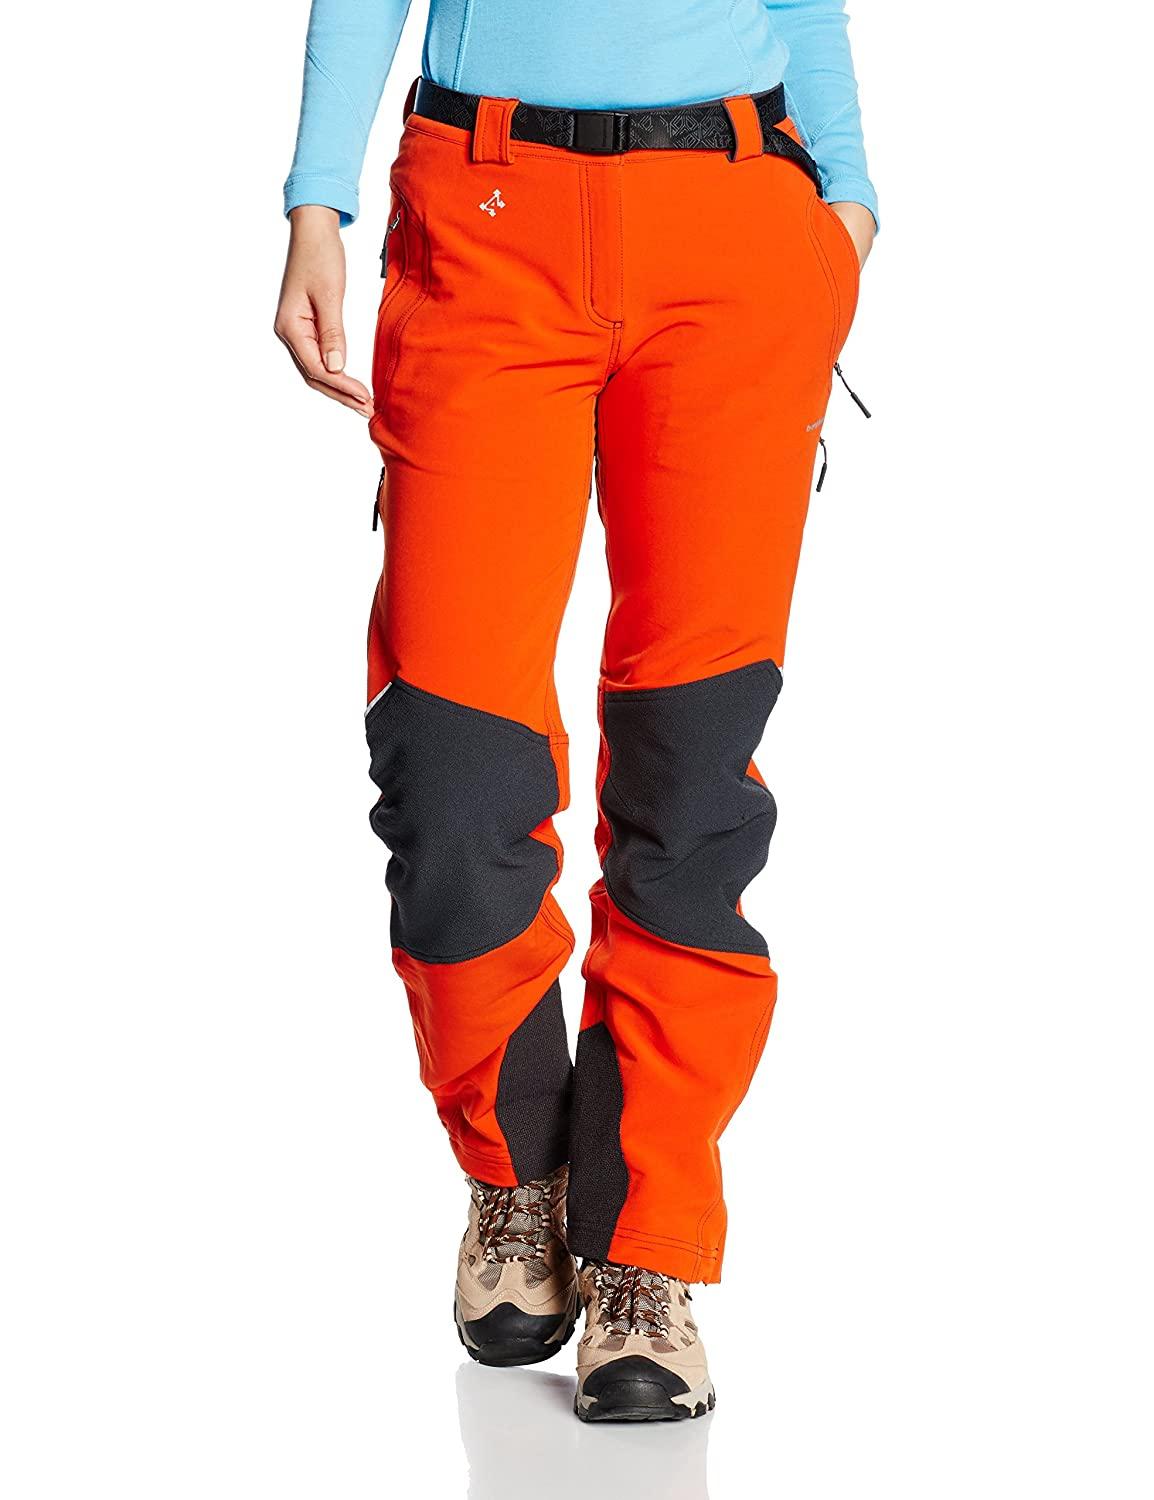 Trango Damen Hose Pants LARGO GETHY, 8433849335651